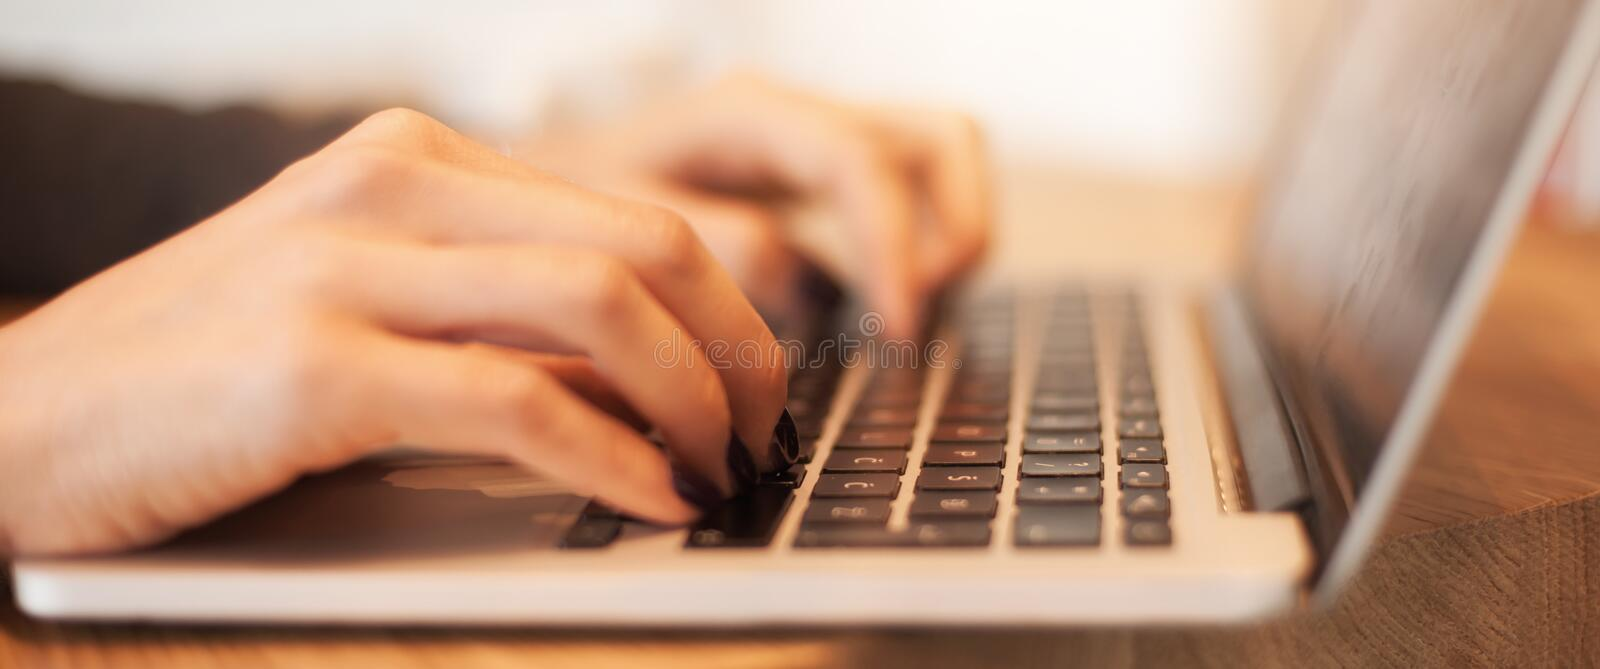 Woman hands typing on laptop keyboard at business meeting. Close up woman hands typing on laptop keyboard at business meeting royalty free stock photo